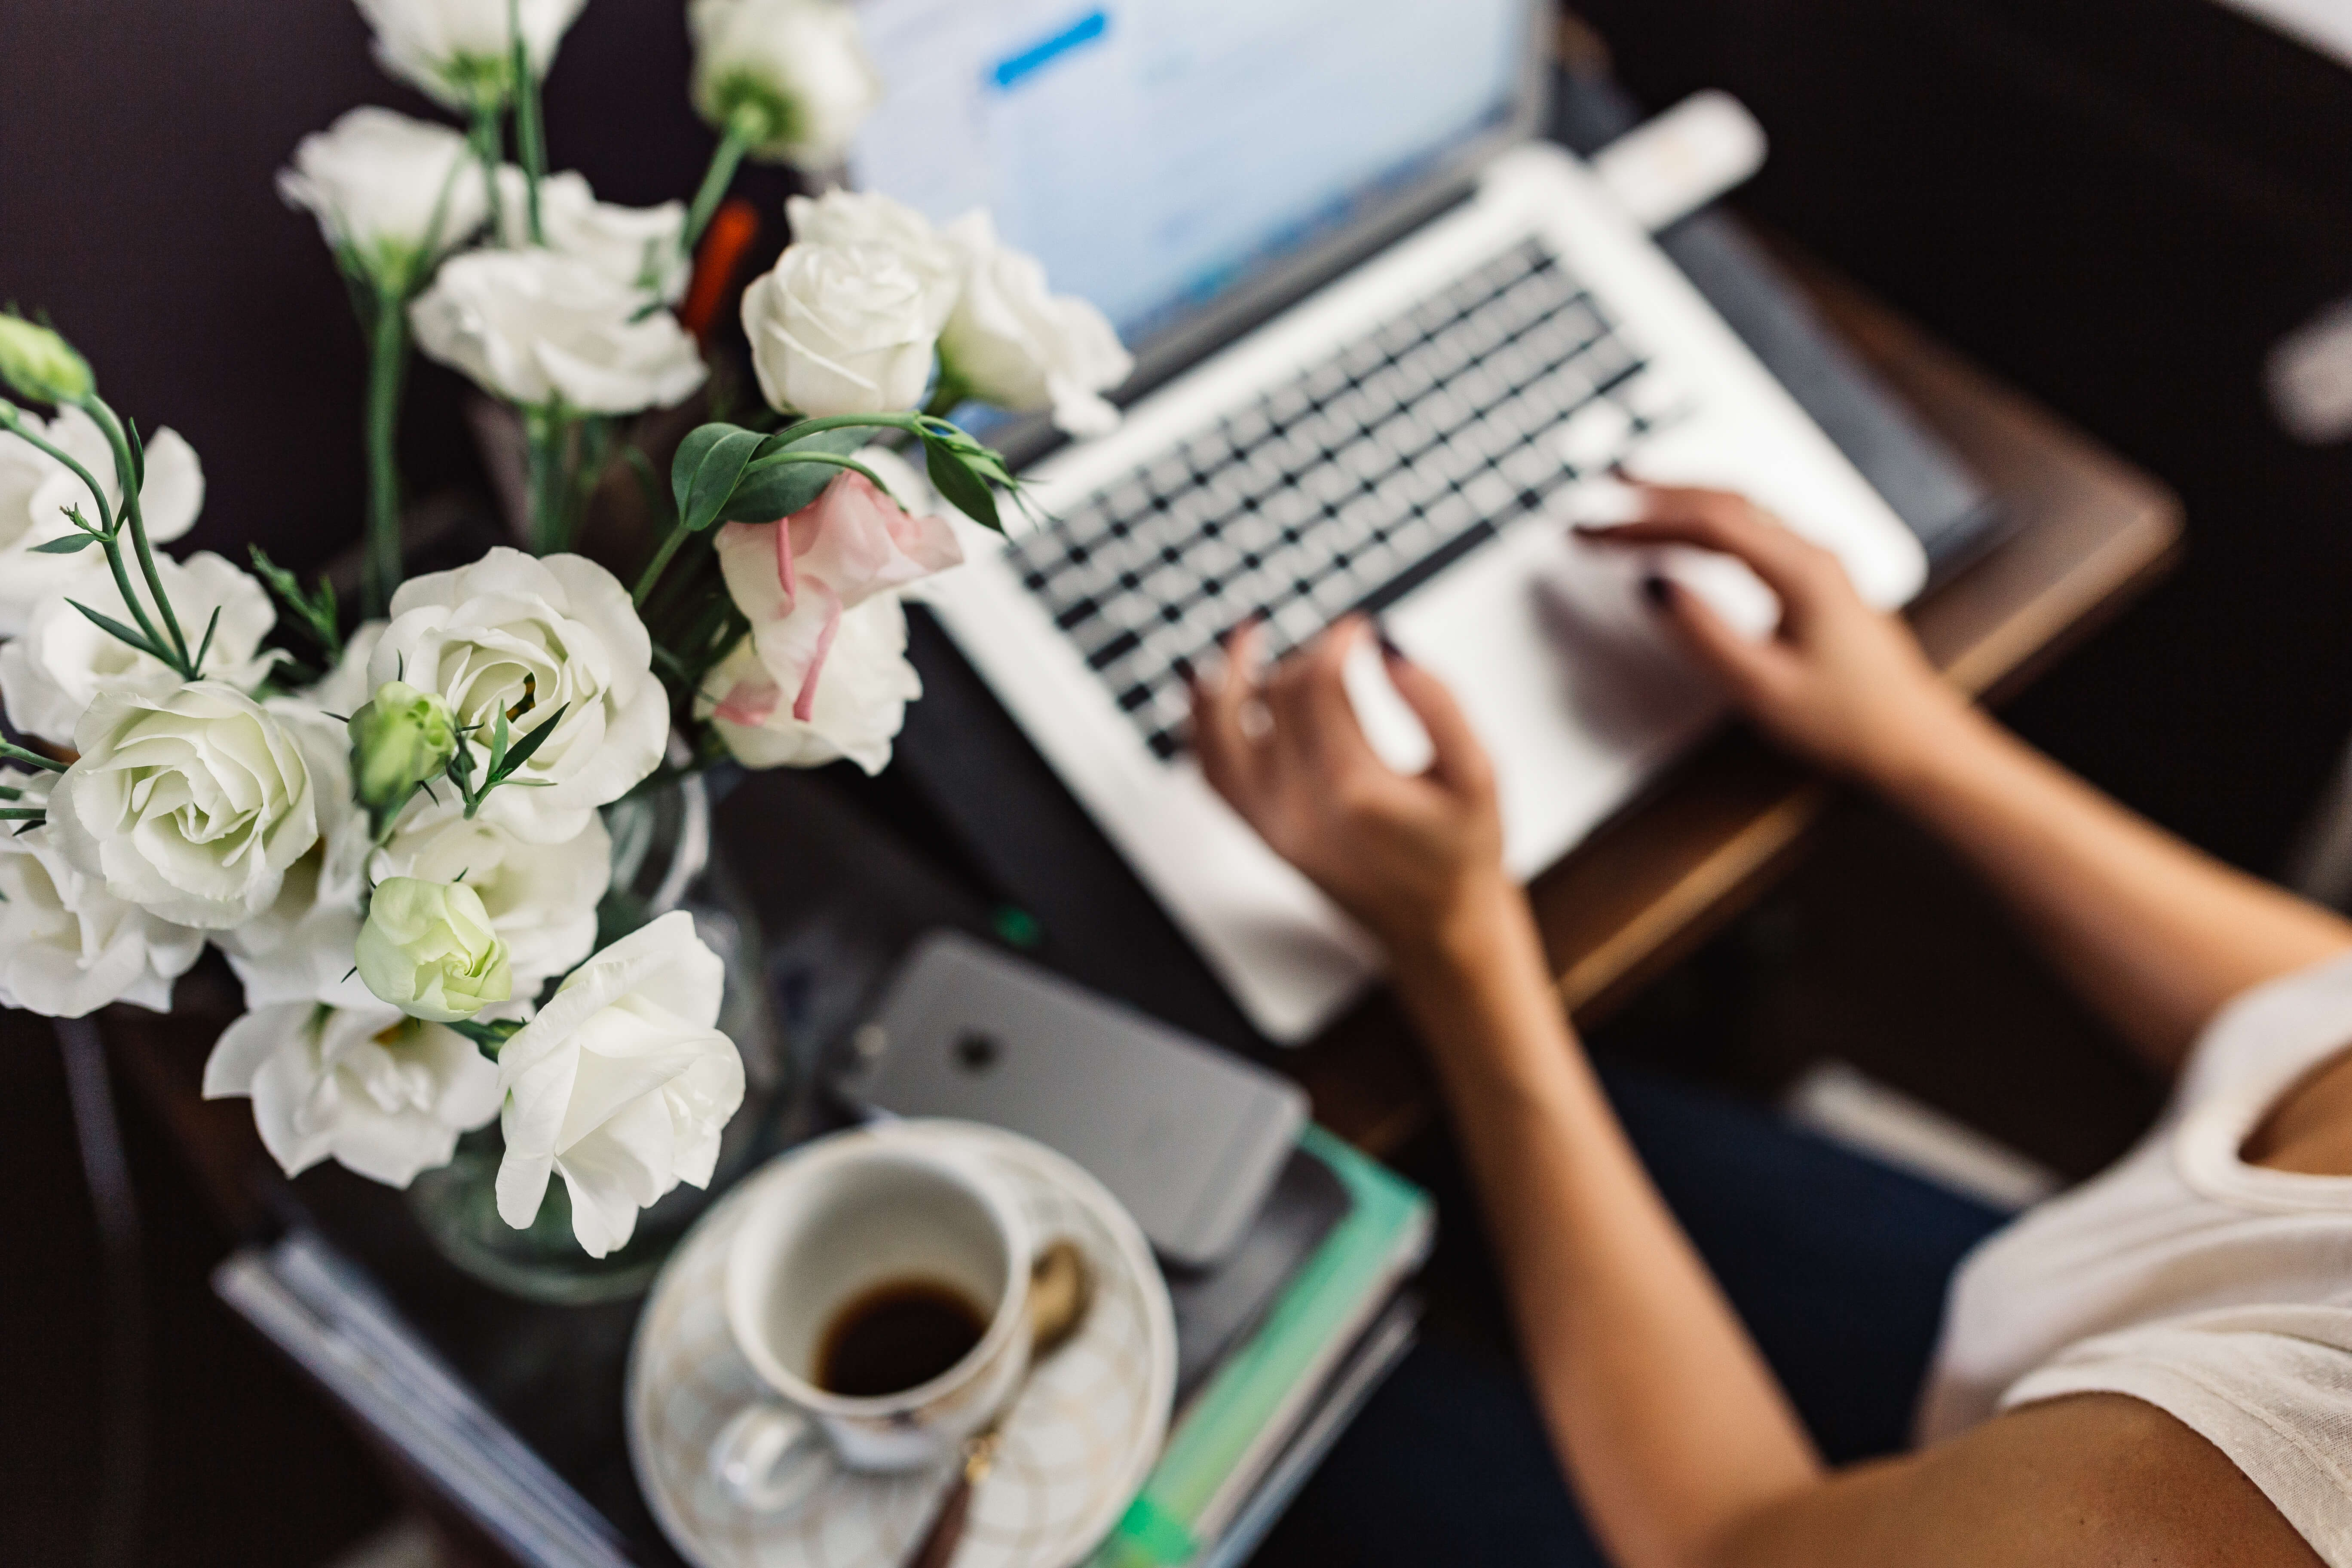 work from home outfits woman at desk with flowers